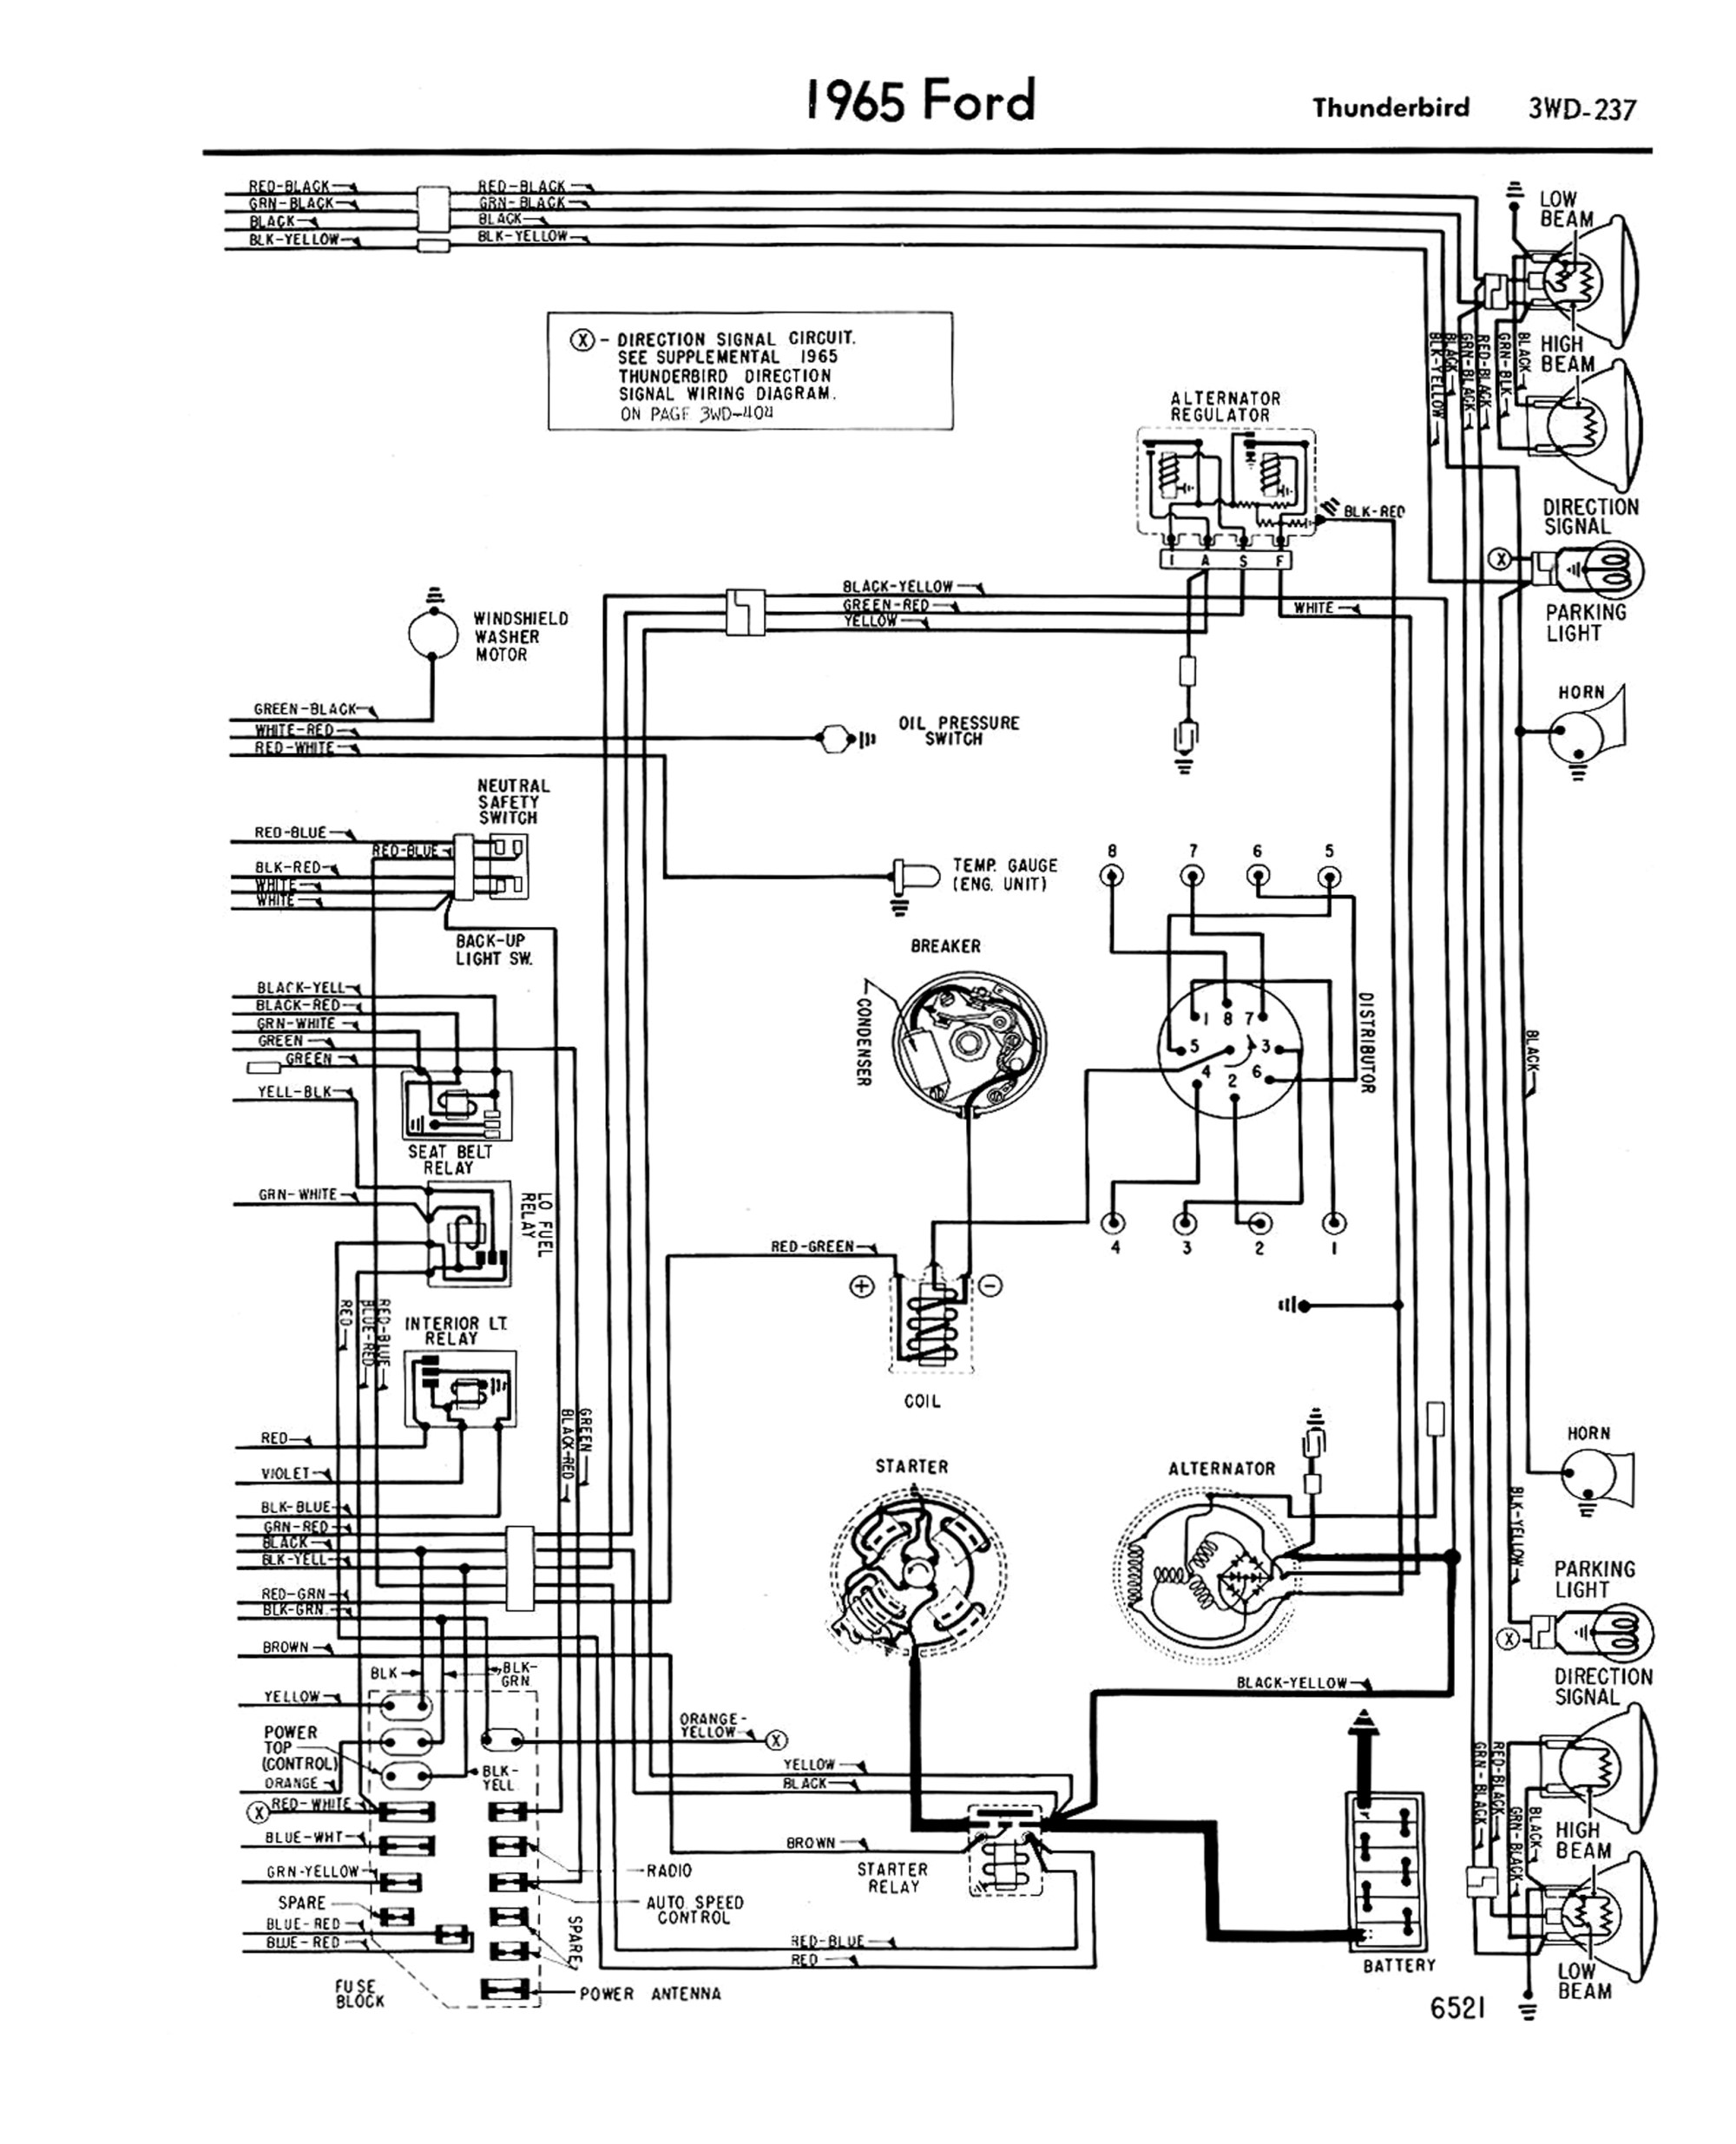 hight resolution of ford thunderbird solenoid diagram simple wiring schema 1986 ford thunderbird interior 1968 ford thunderbird general fuse